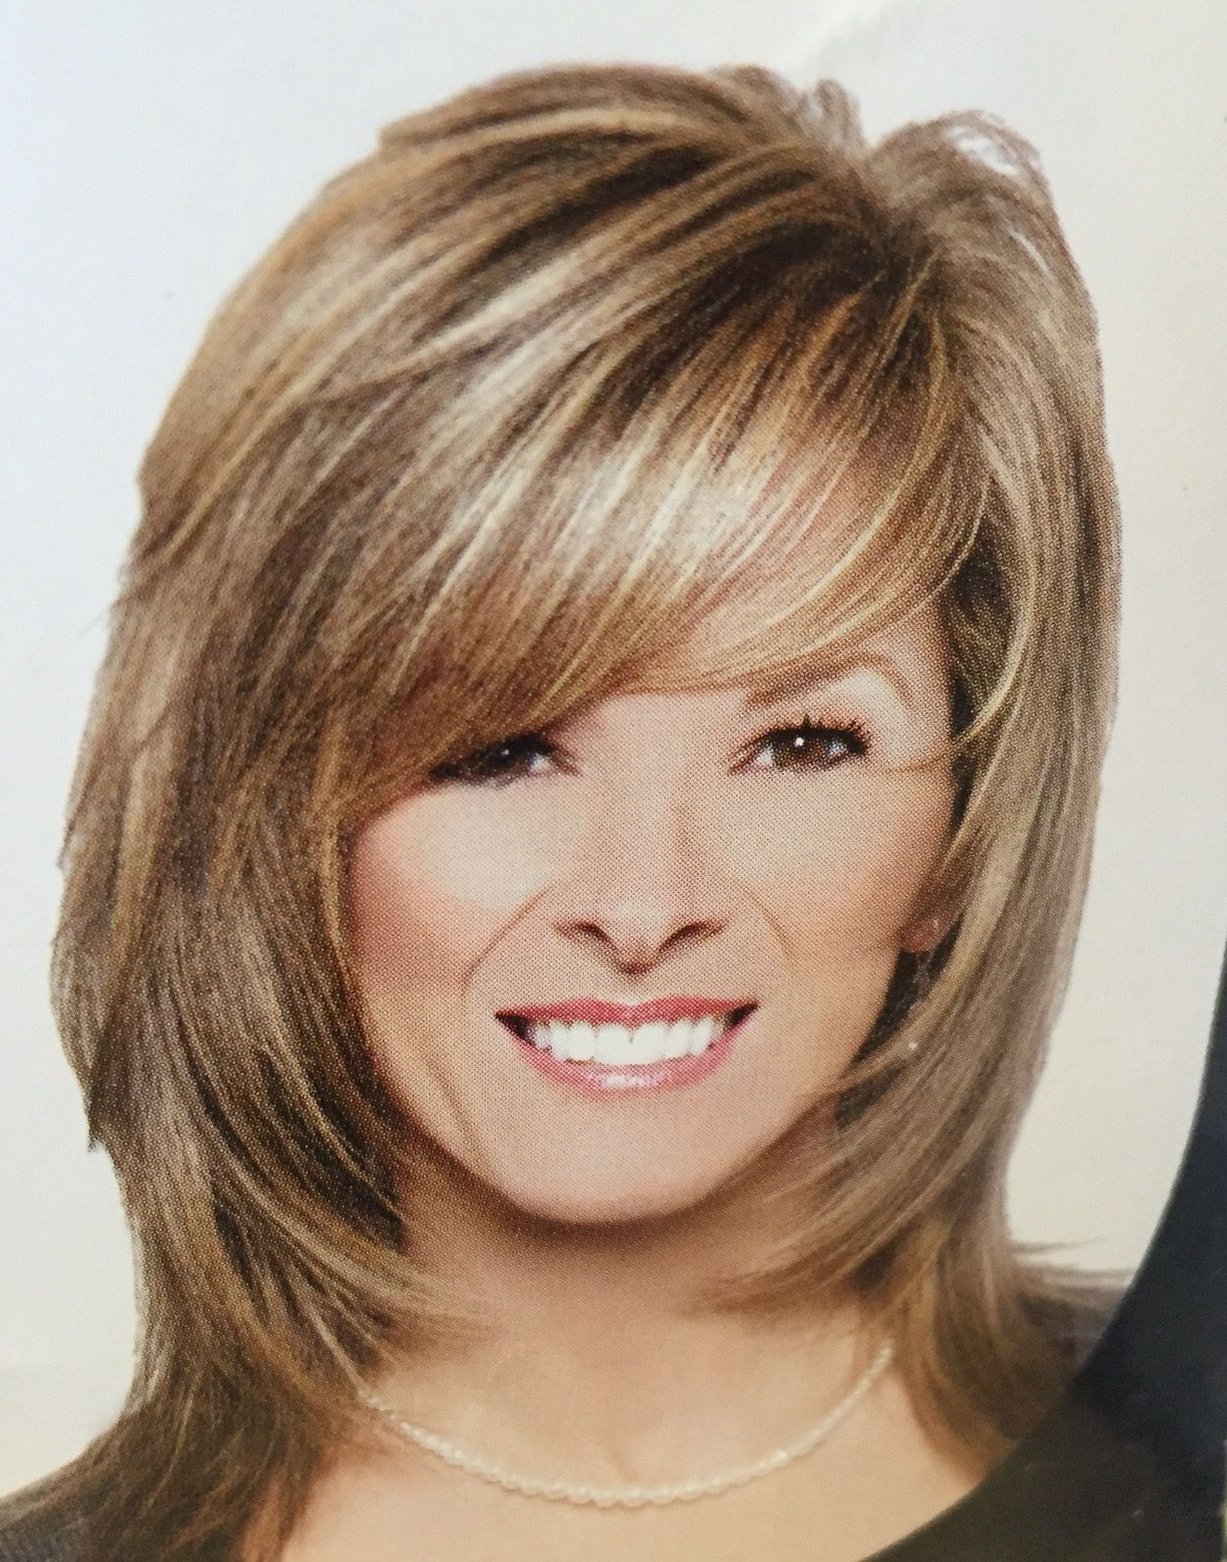 Face Framing Layers | Style | Pinterest | Face Framing Layers, Face Regarding Face Framing Short Hairstyles (View 14 of 25)